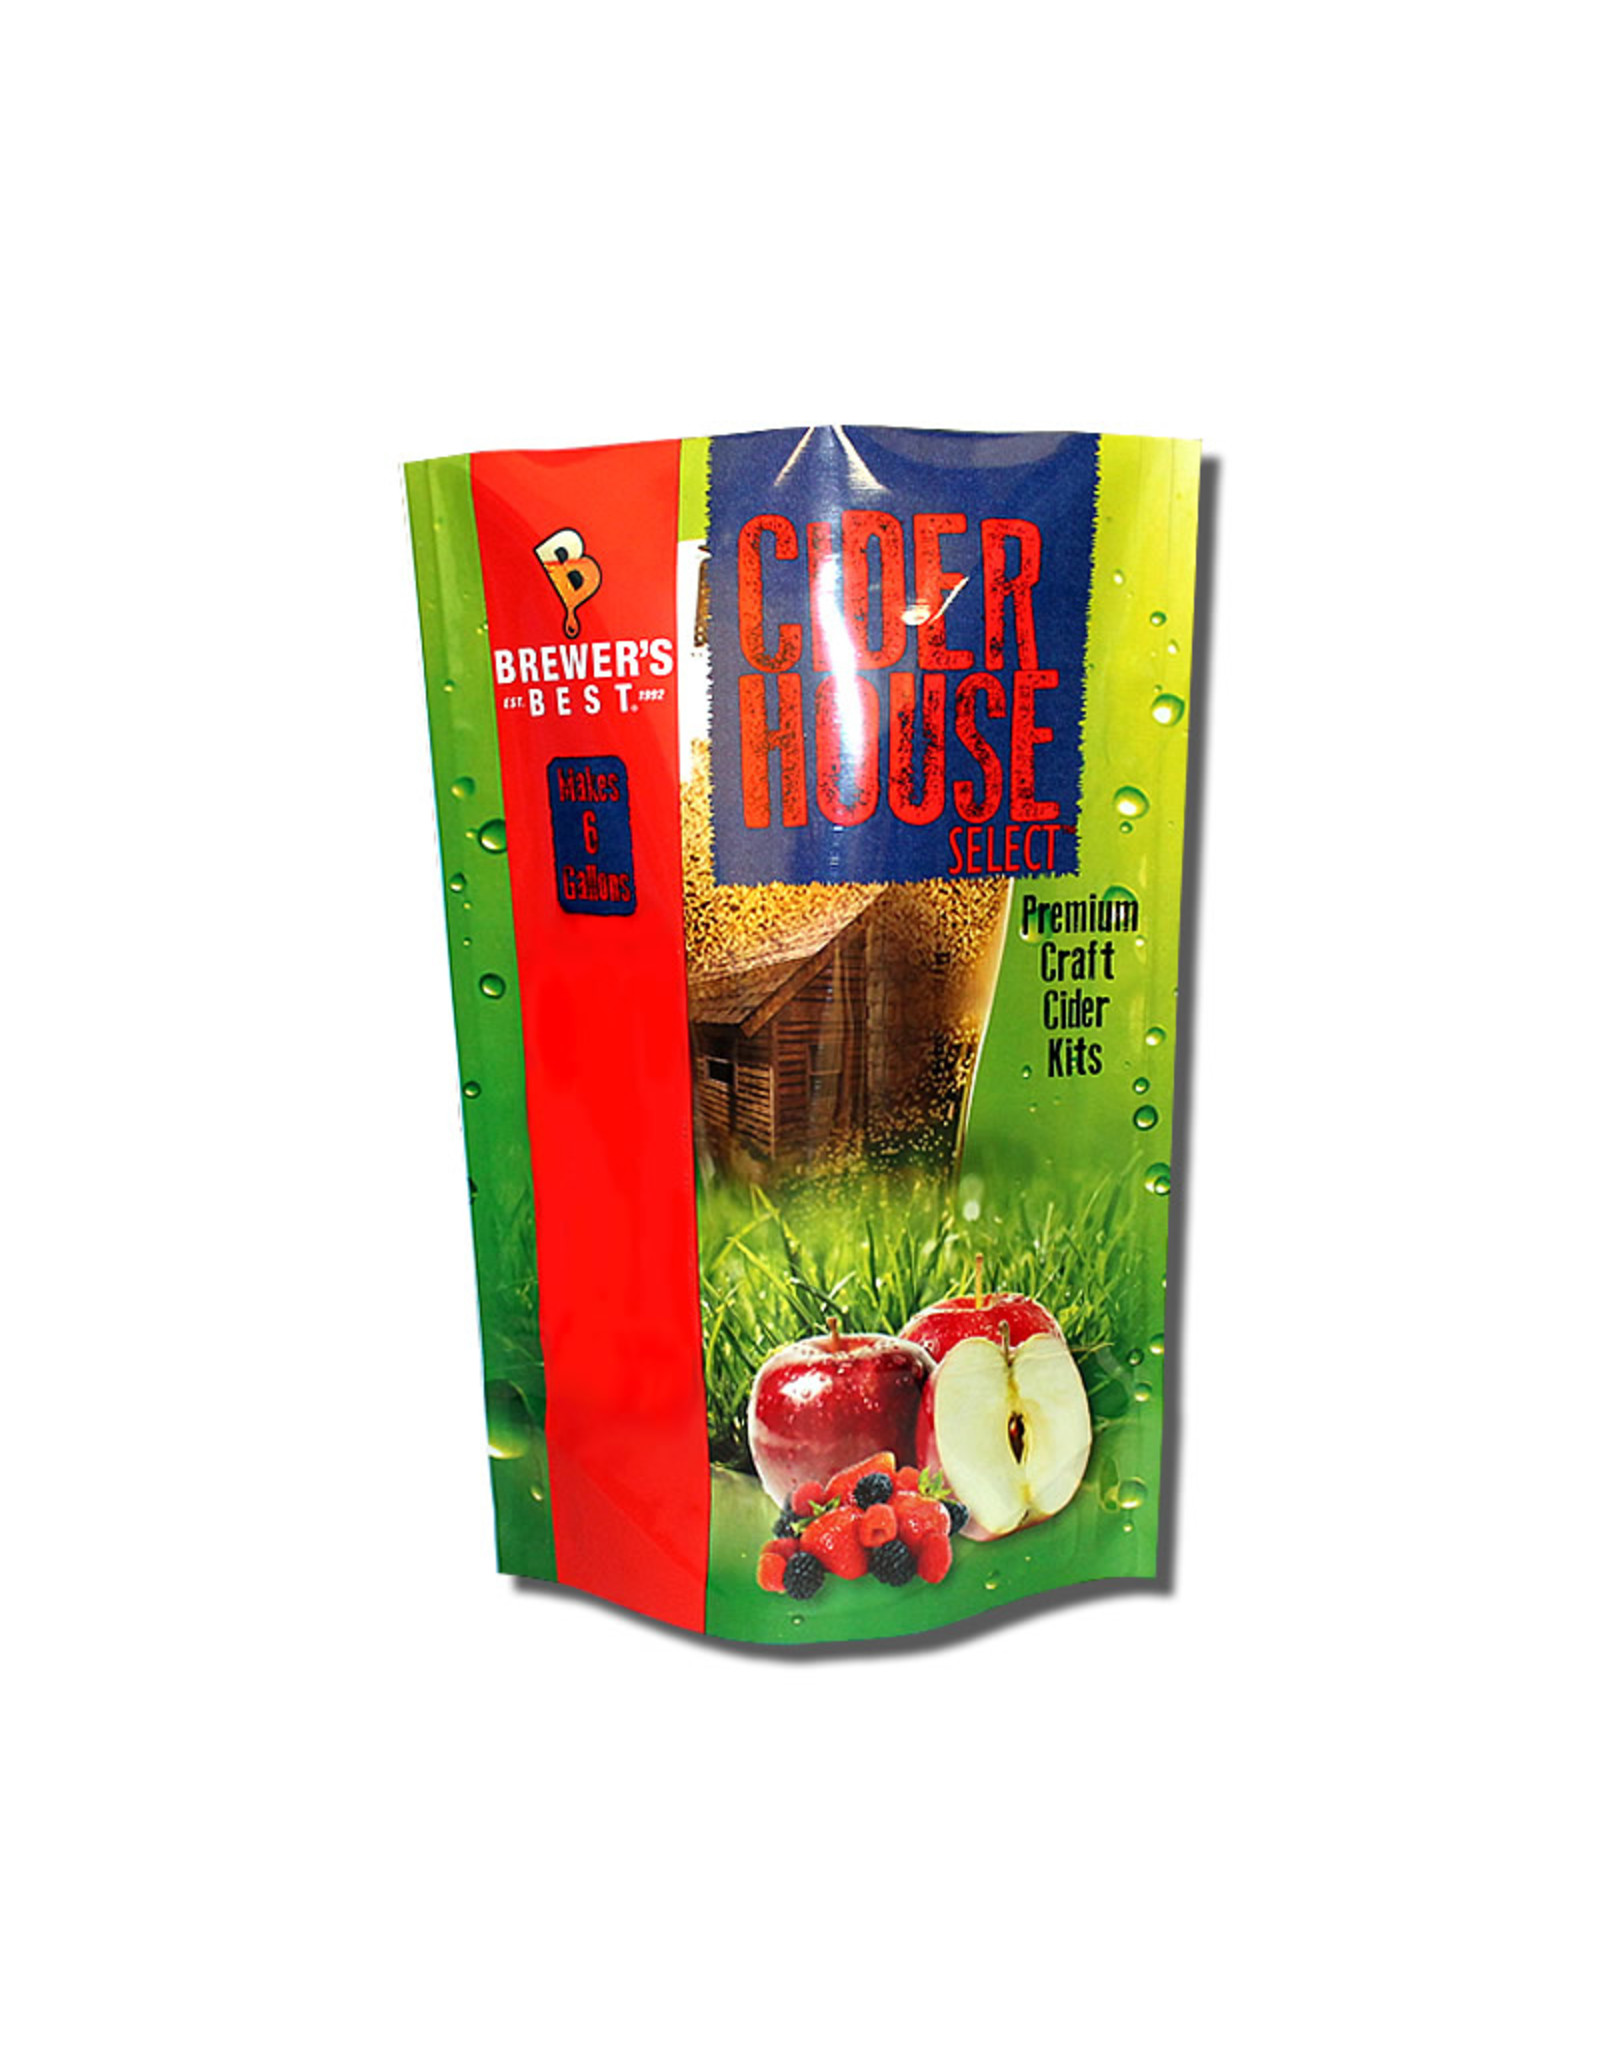 Cider House Select - Cherry Cider